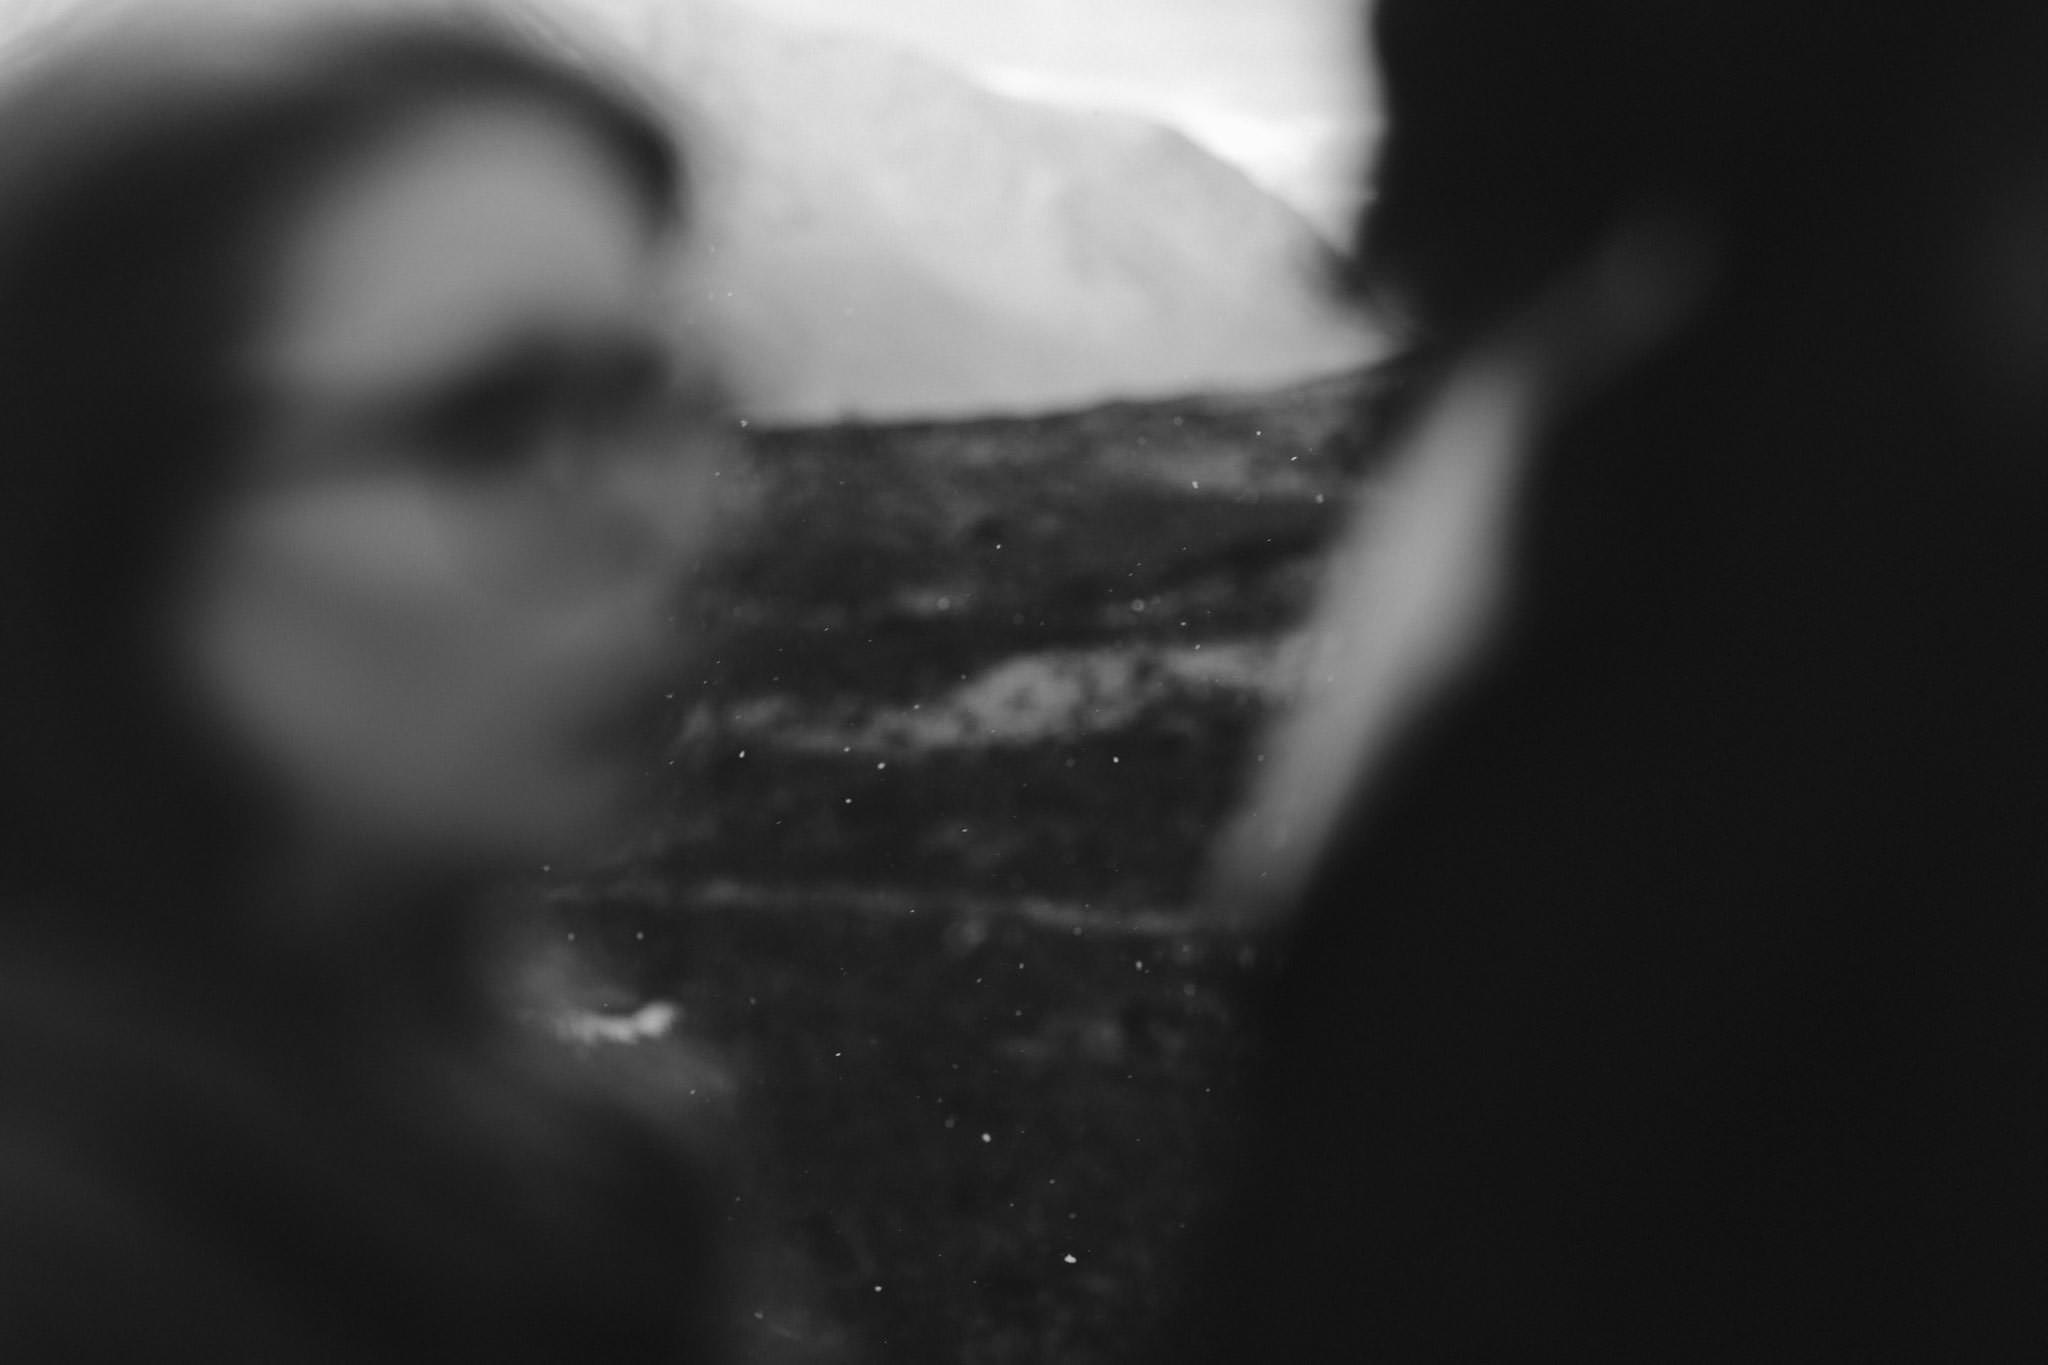 elopement-proposal-glencoe-photos-026